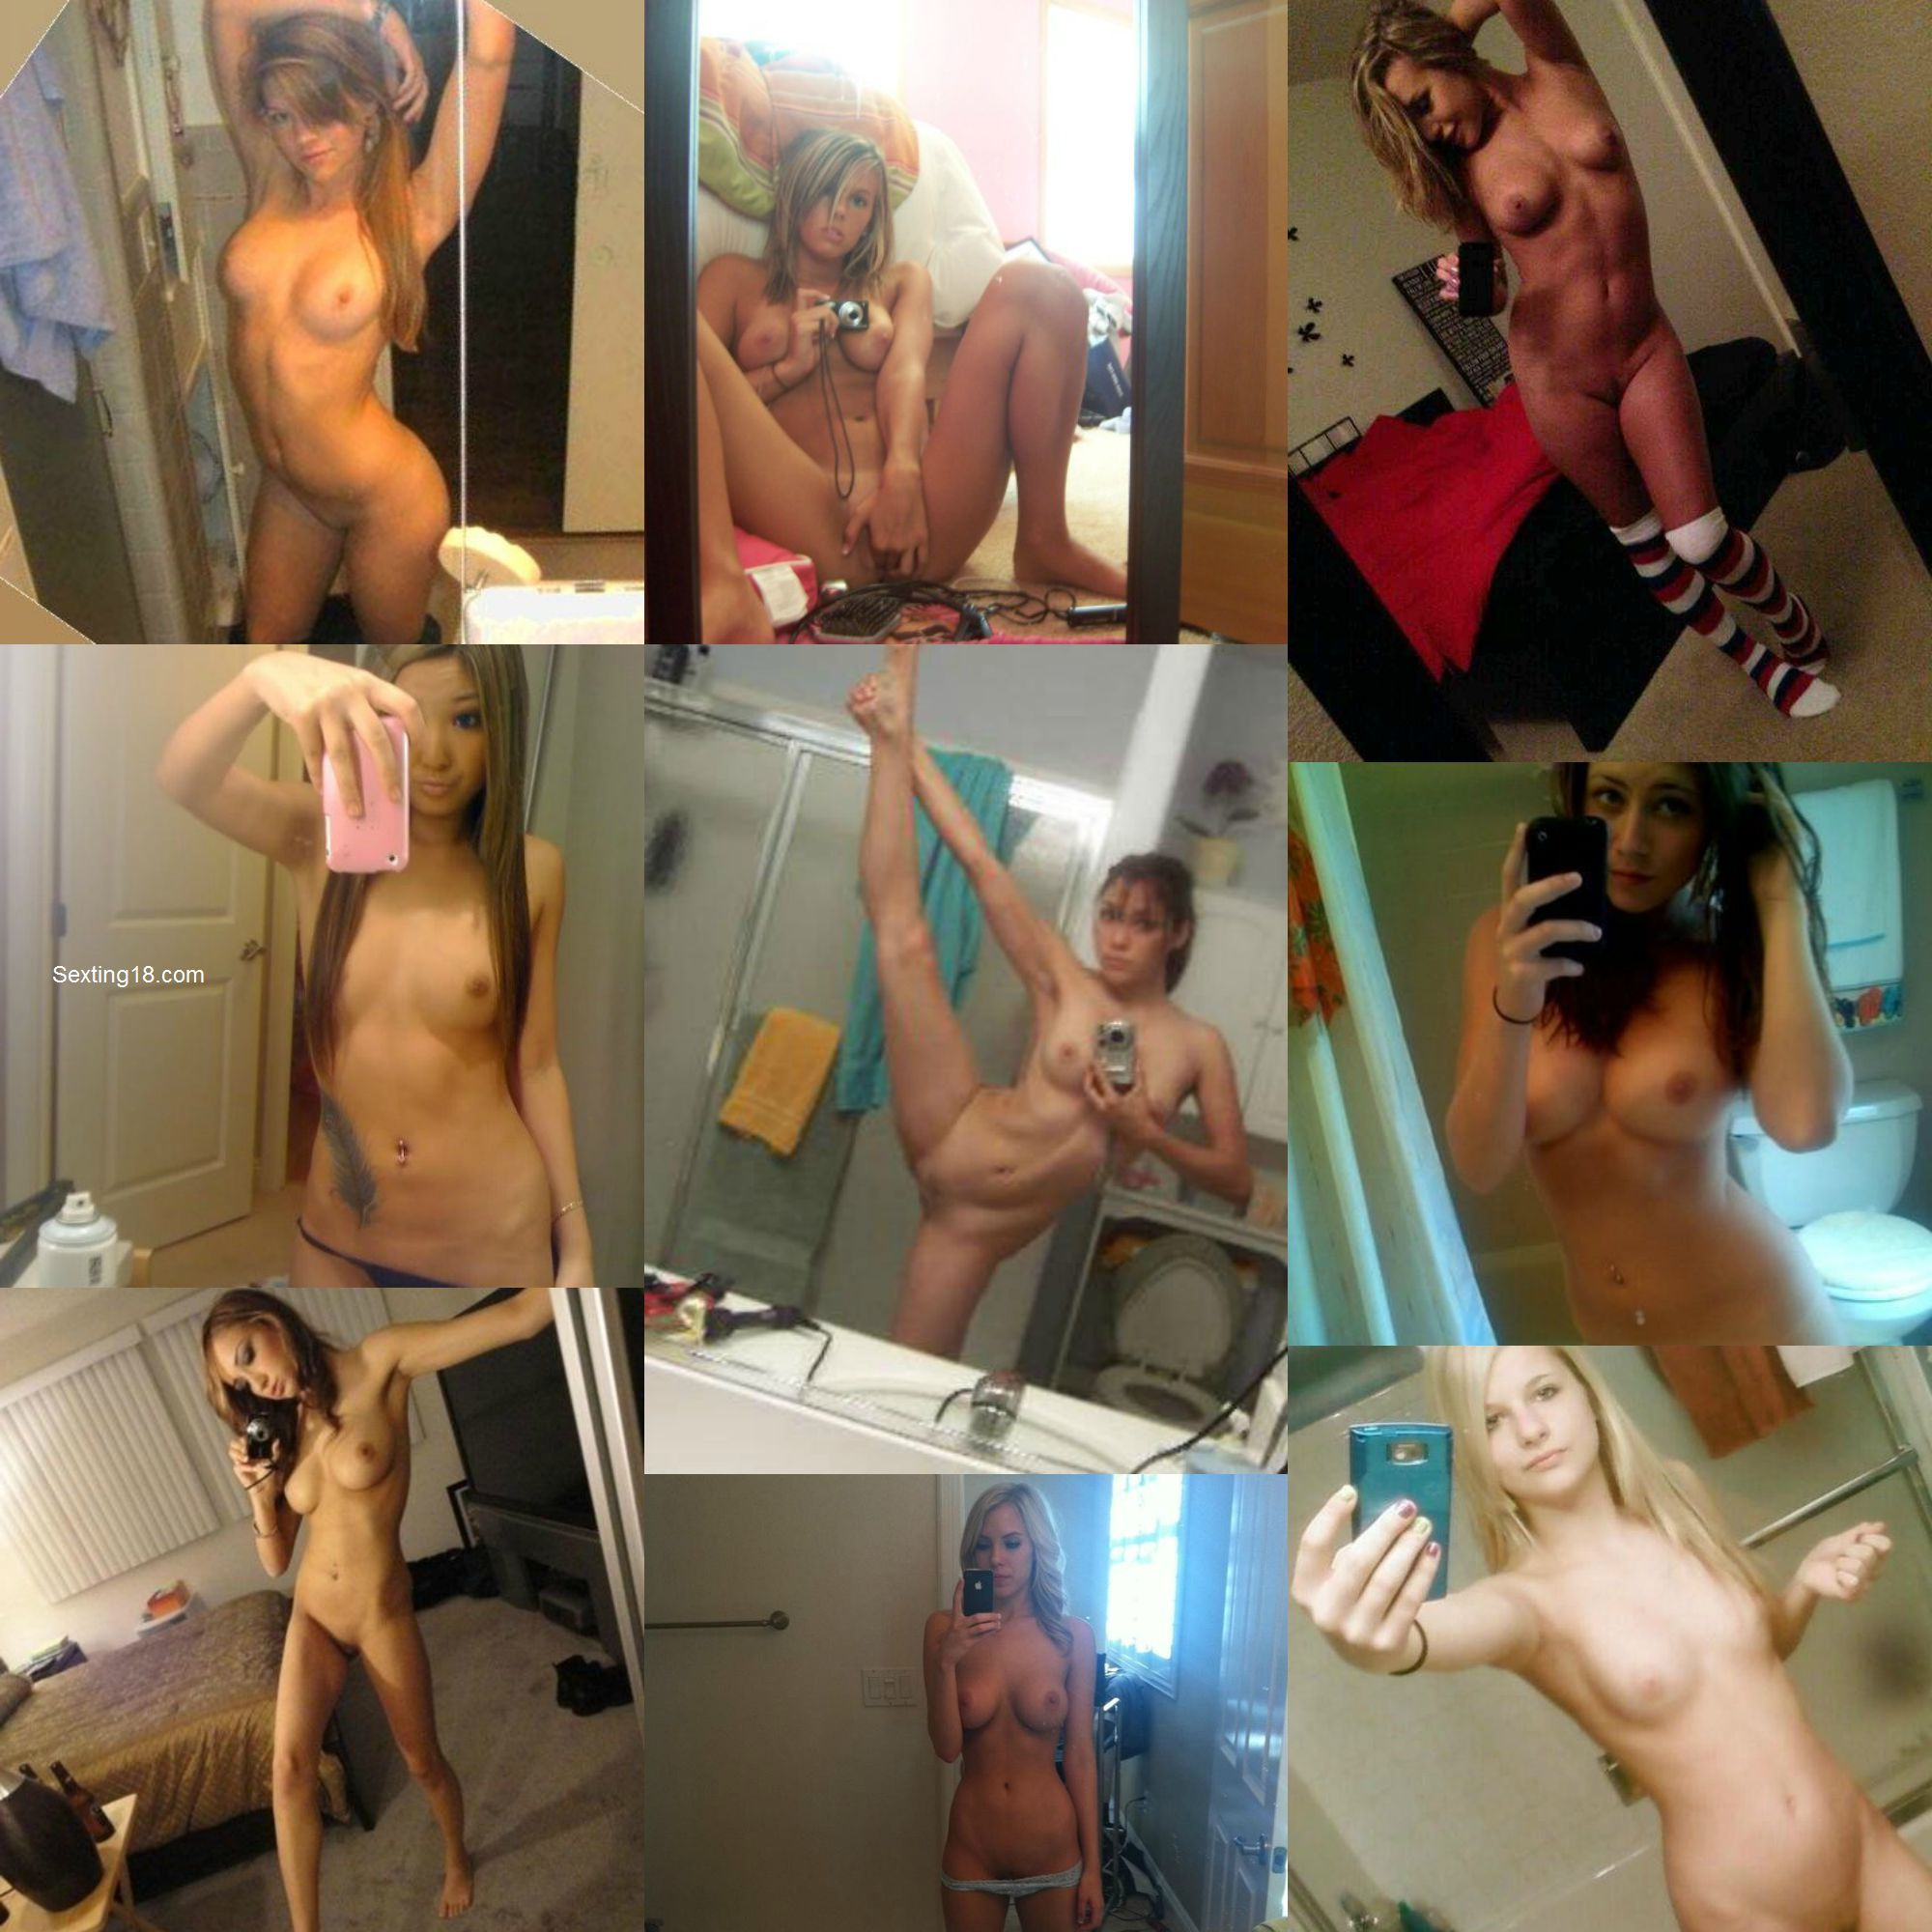 Girls of the acc nude galleries